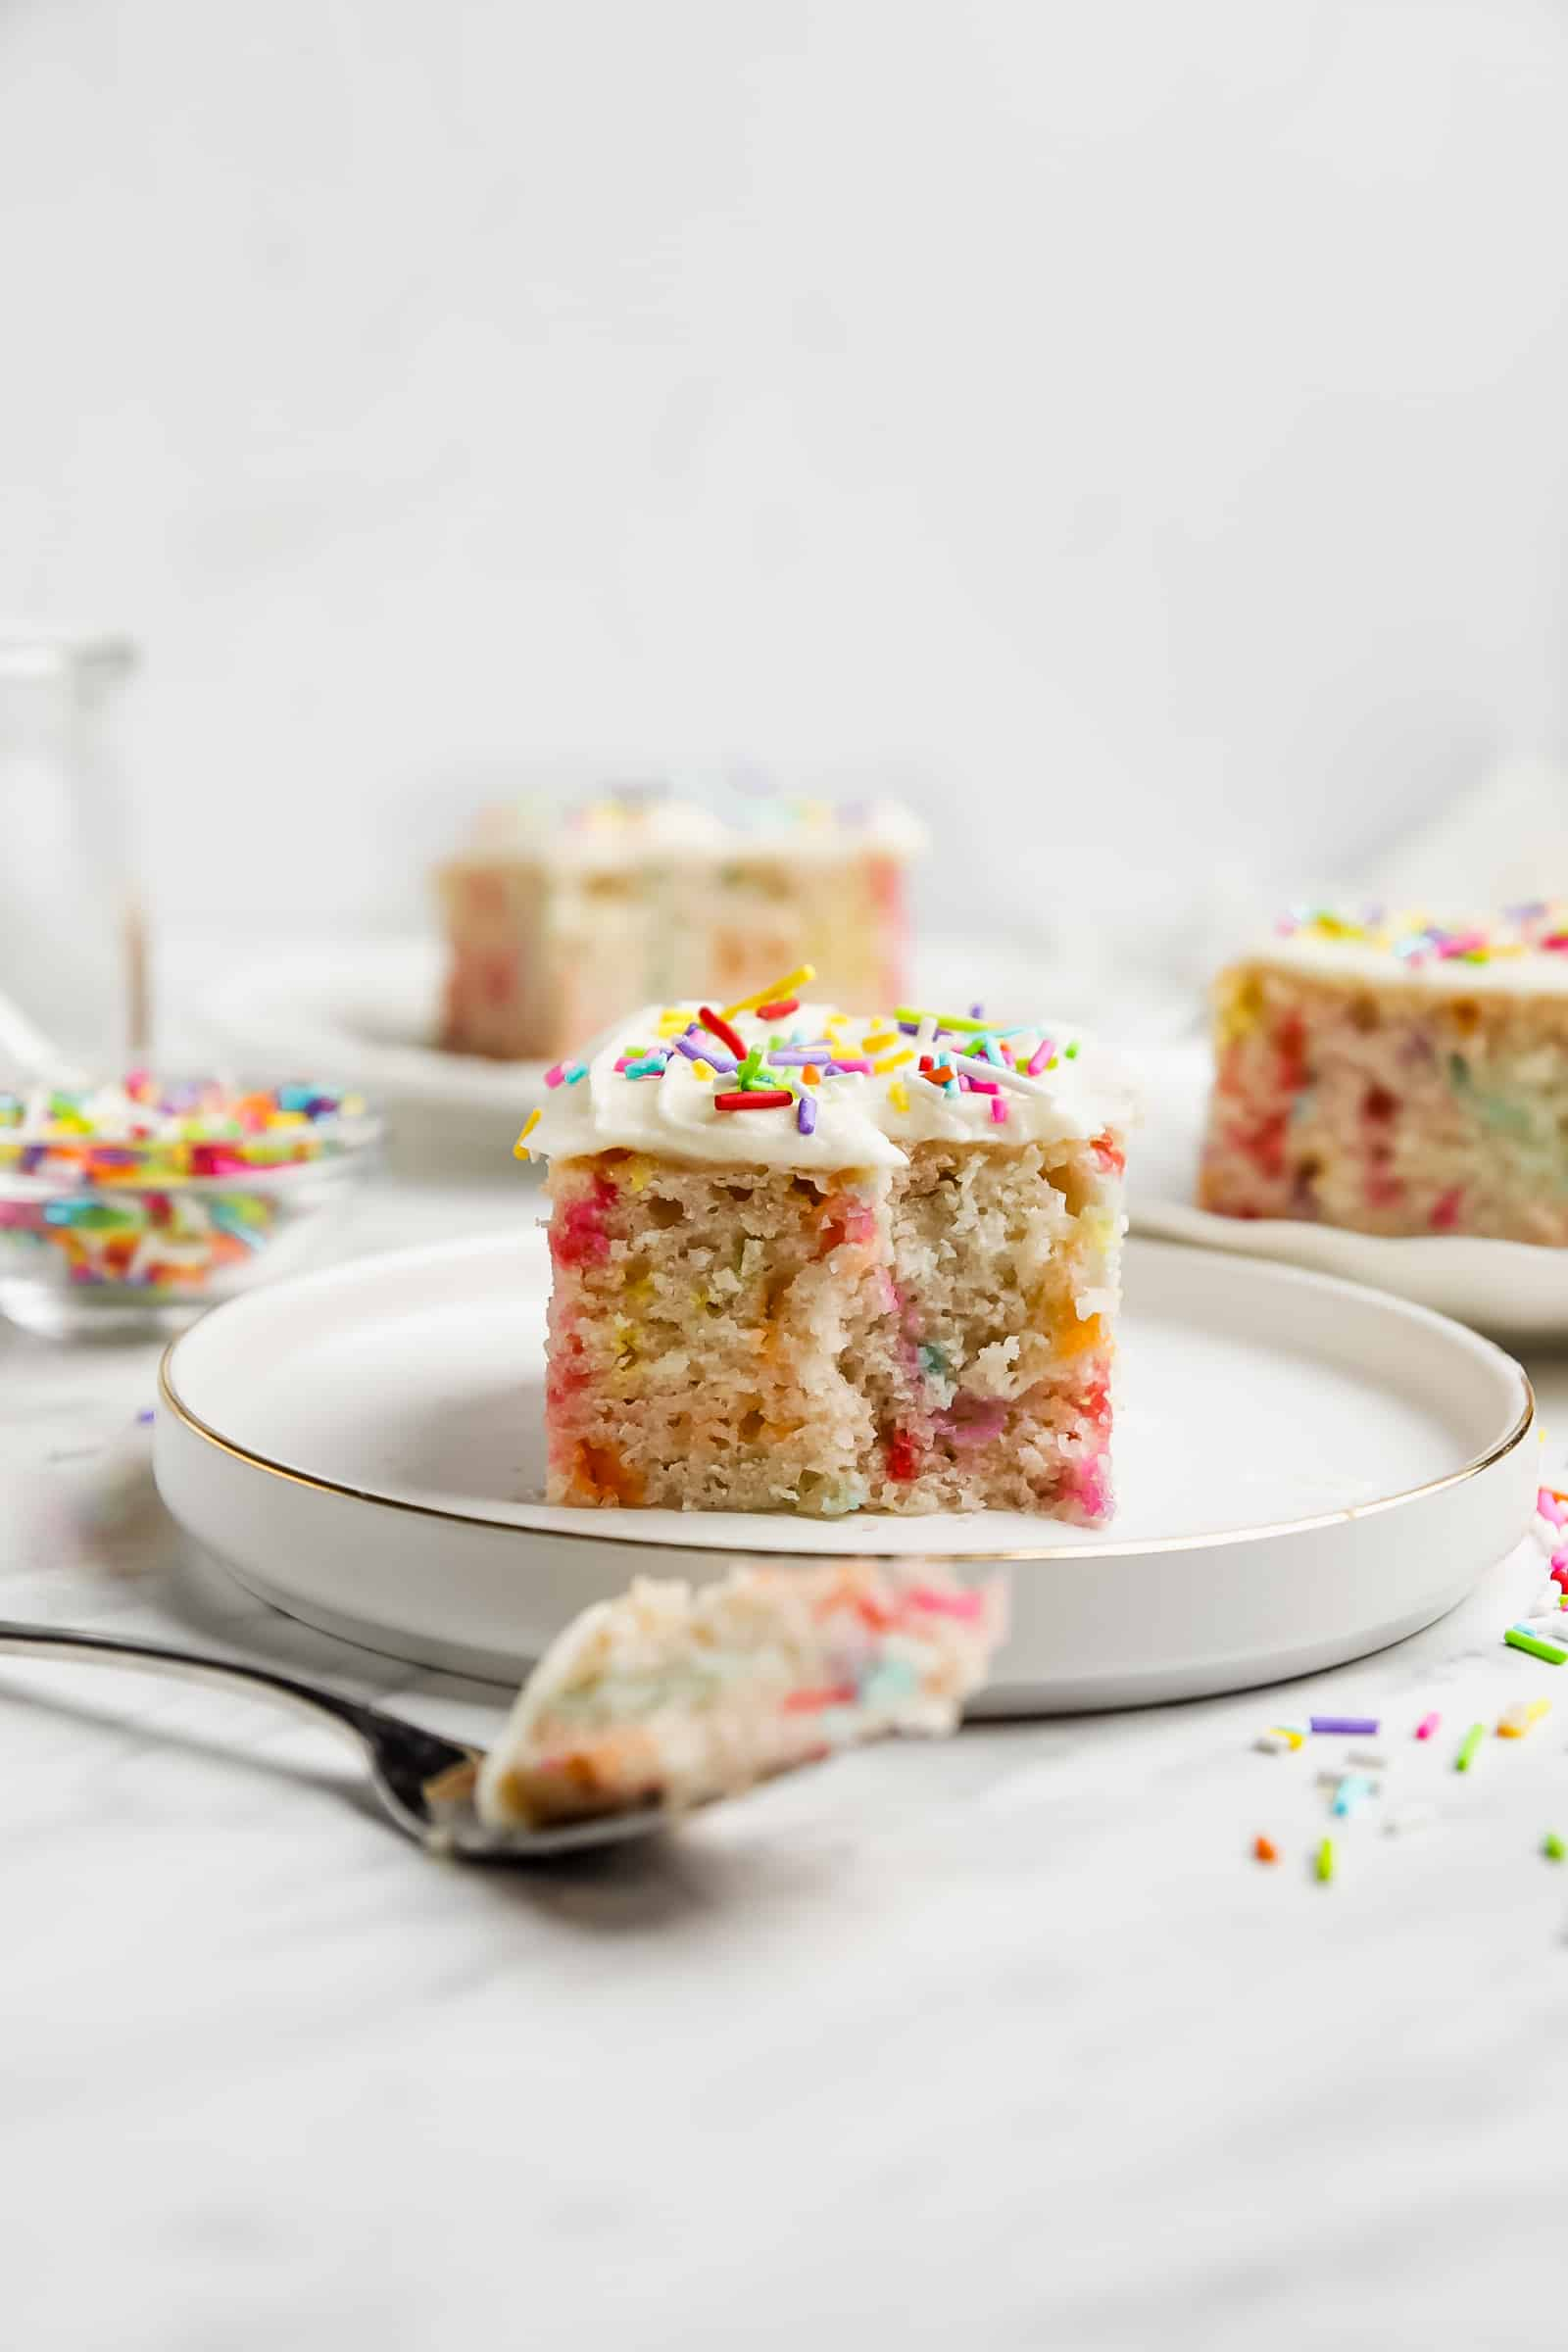 slice of funfetti cake on a plate with a fork